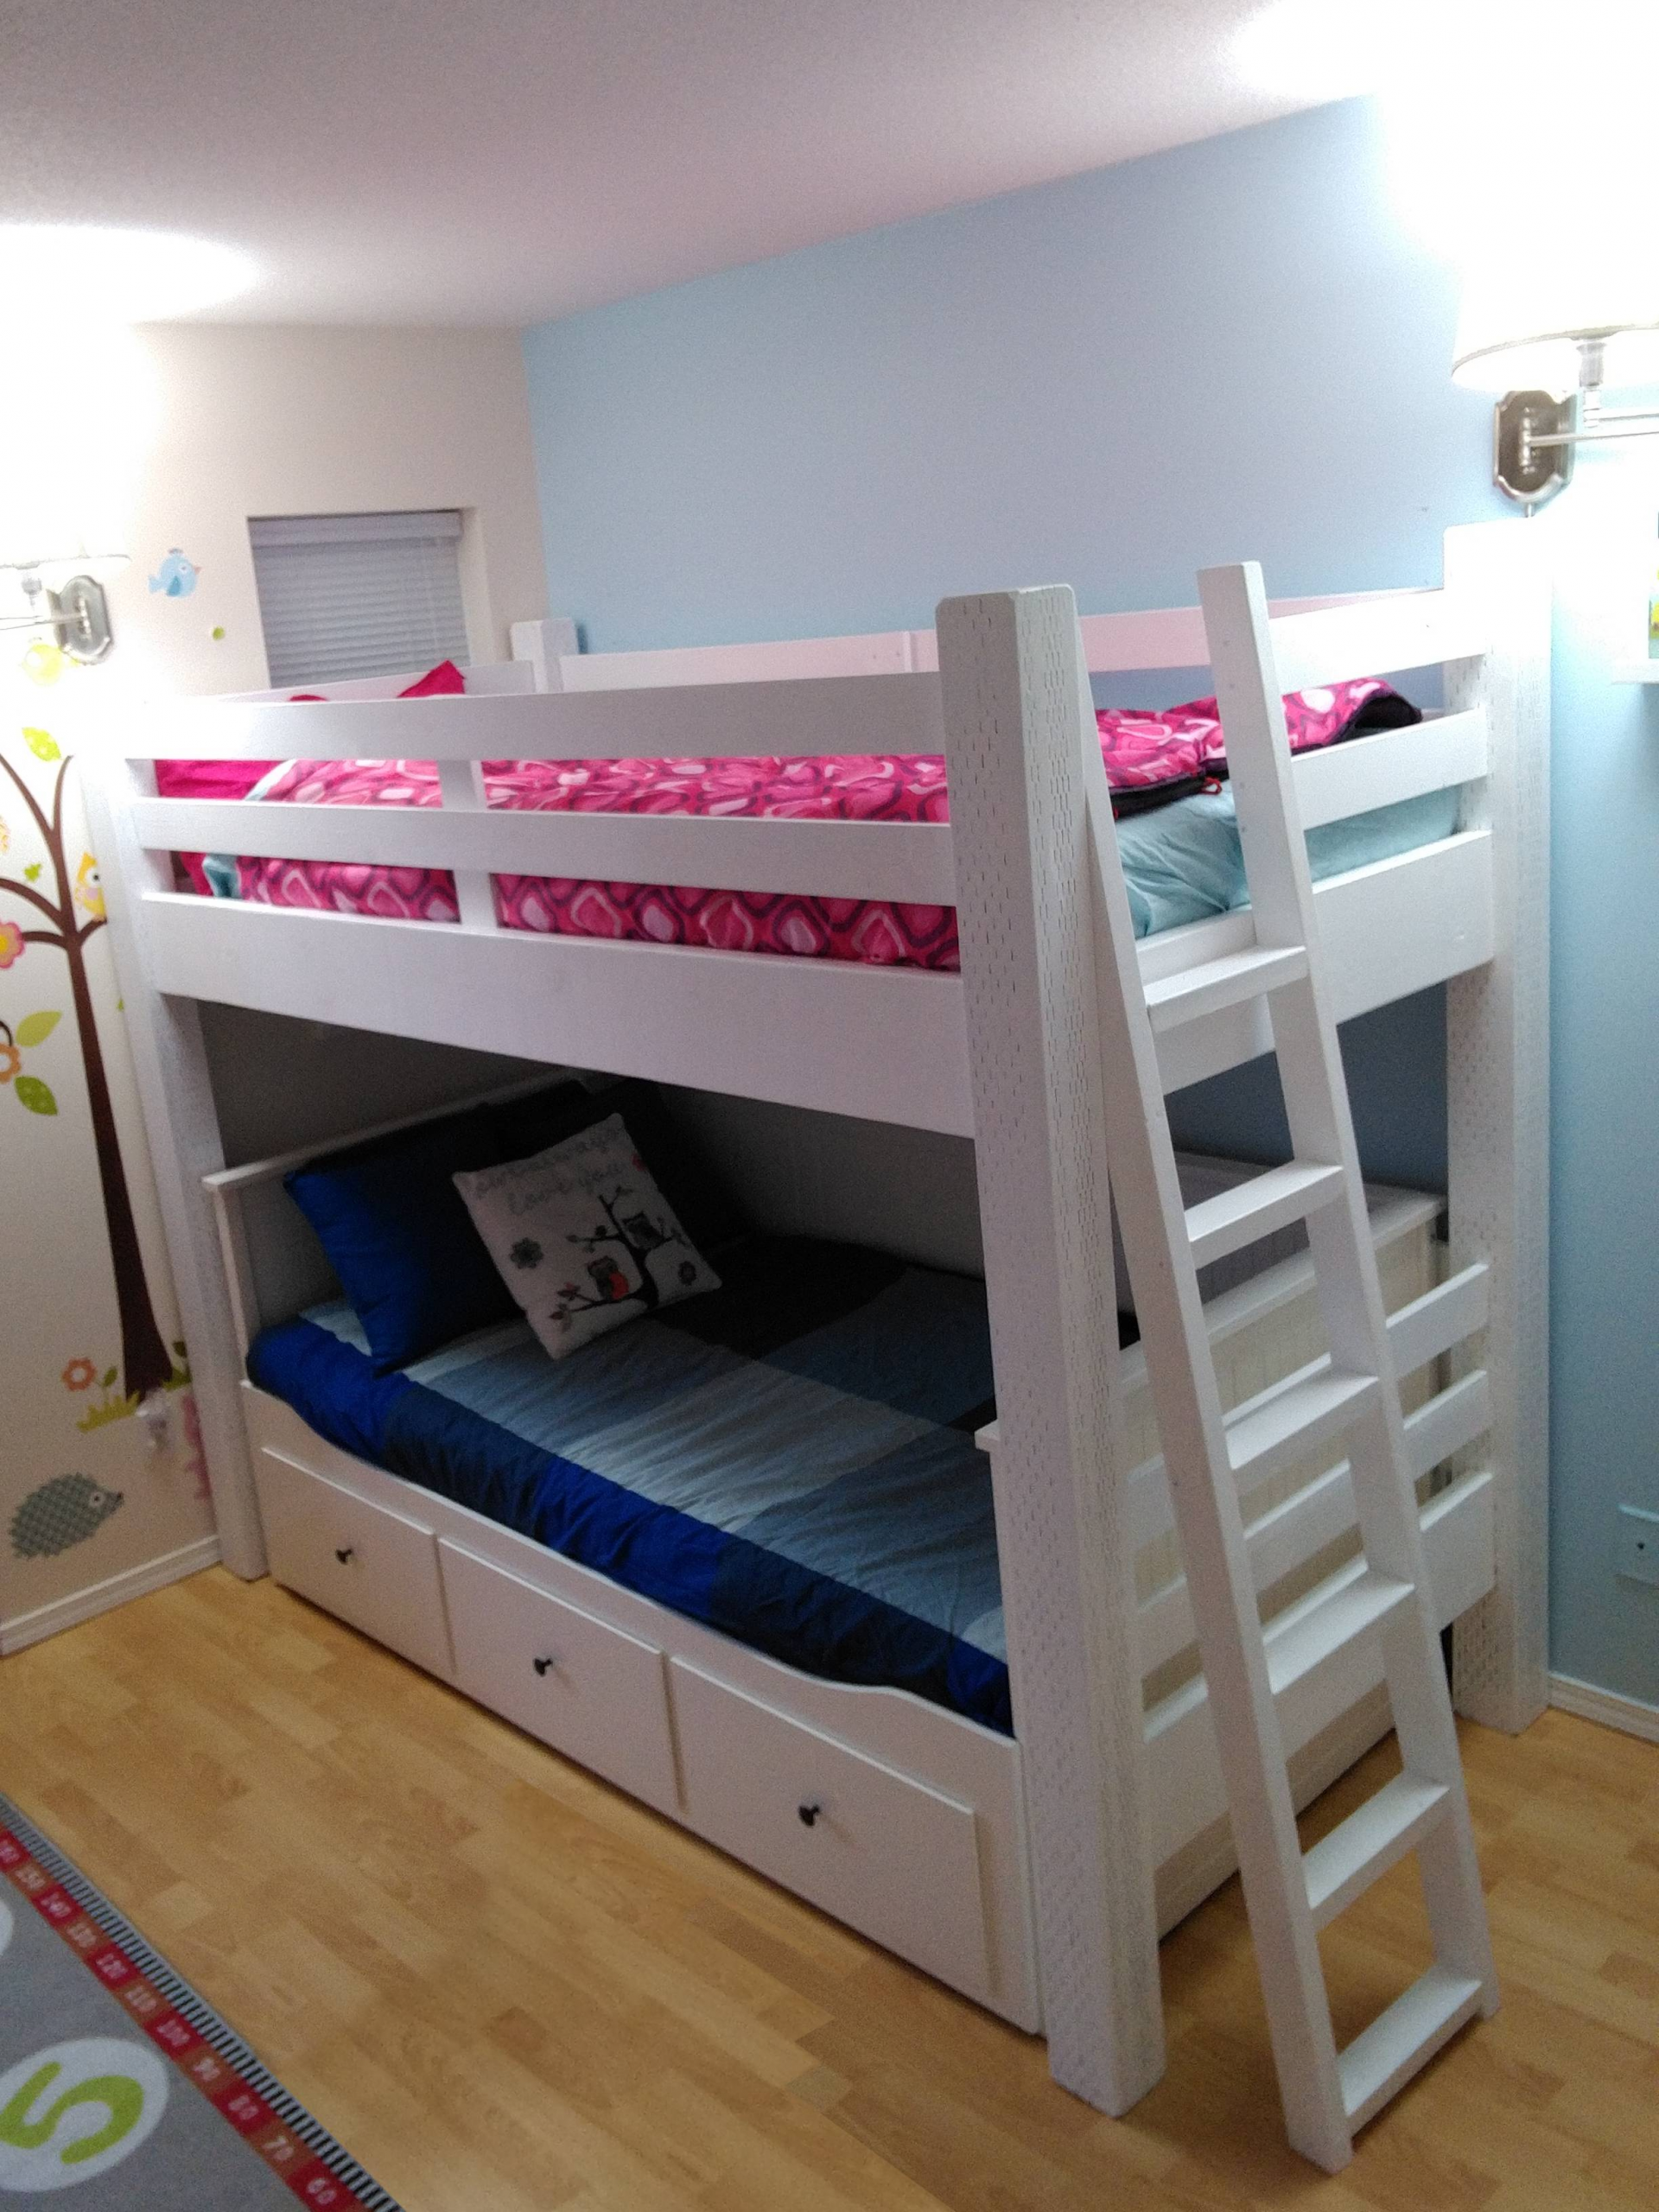 Loft Bed Awesome Custom Loft Bed Built to Wrap the Ikea Hemnes Daybed